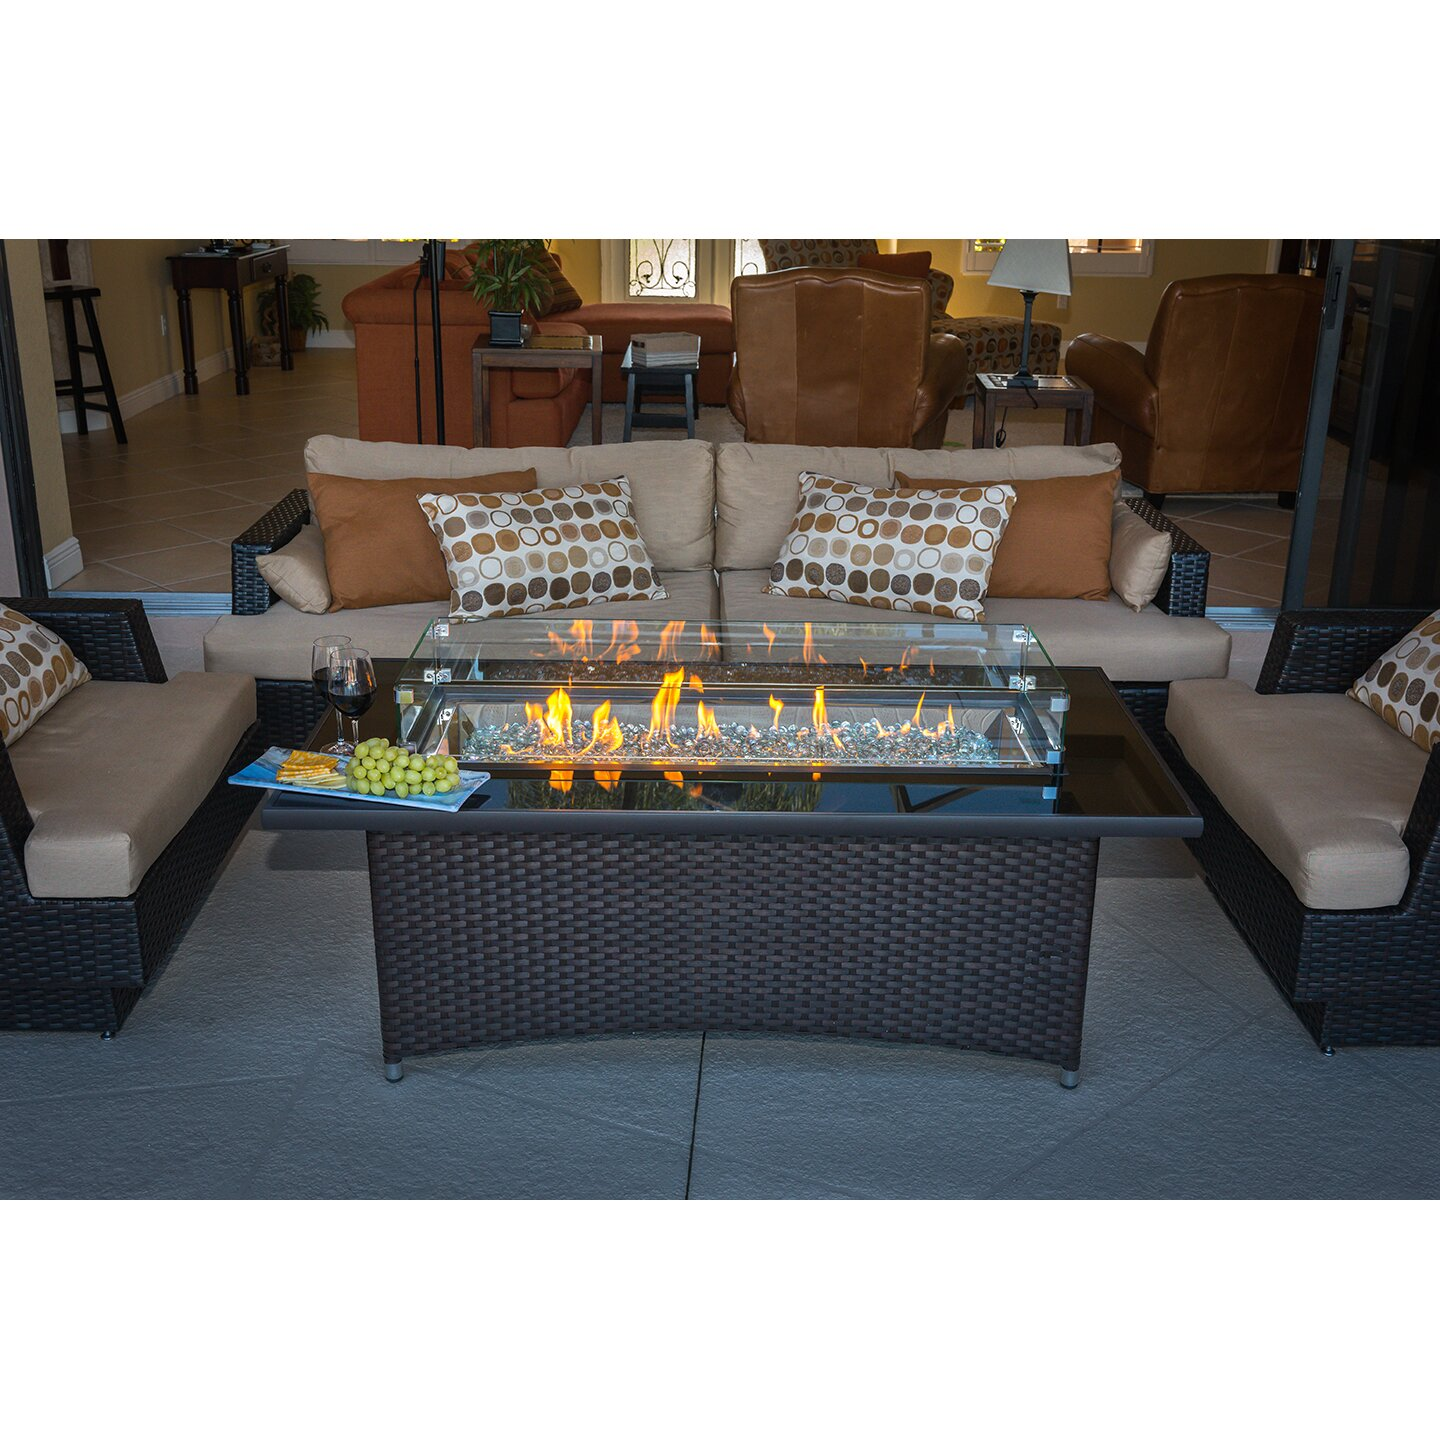 Wicker Coffee Table Base: The Outdoor GreatRoom Company Montego Crystal Fire Pit